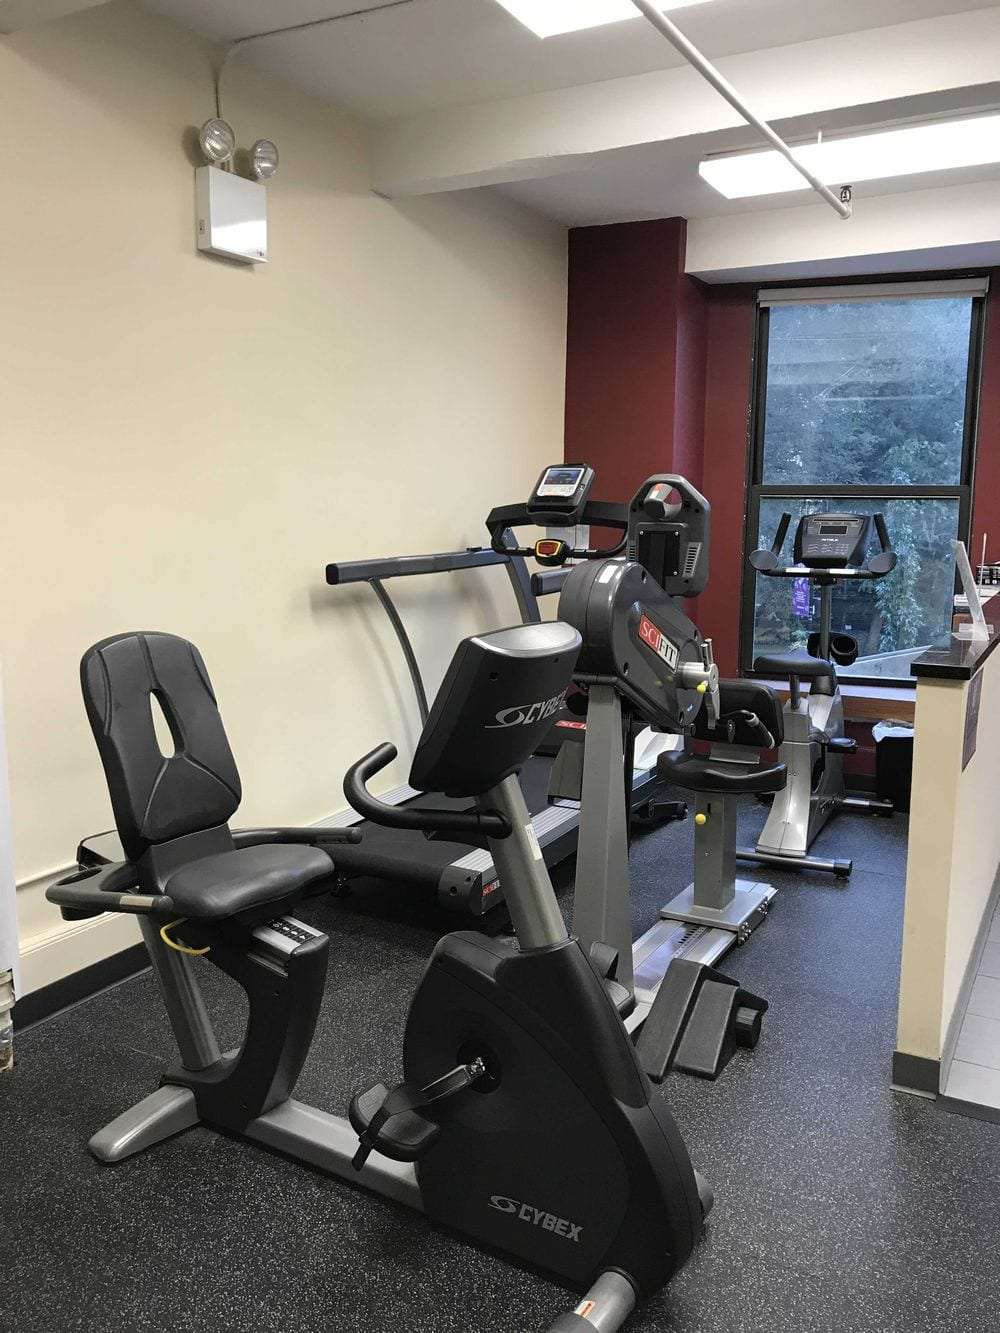 Here is an image of the equipment at our physical therapy clinic at Union Square in lower Manhattan, New York City.